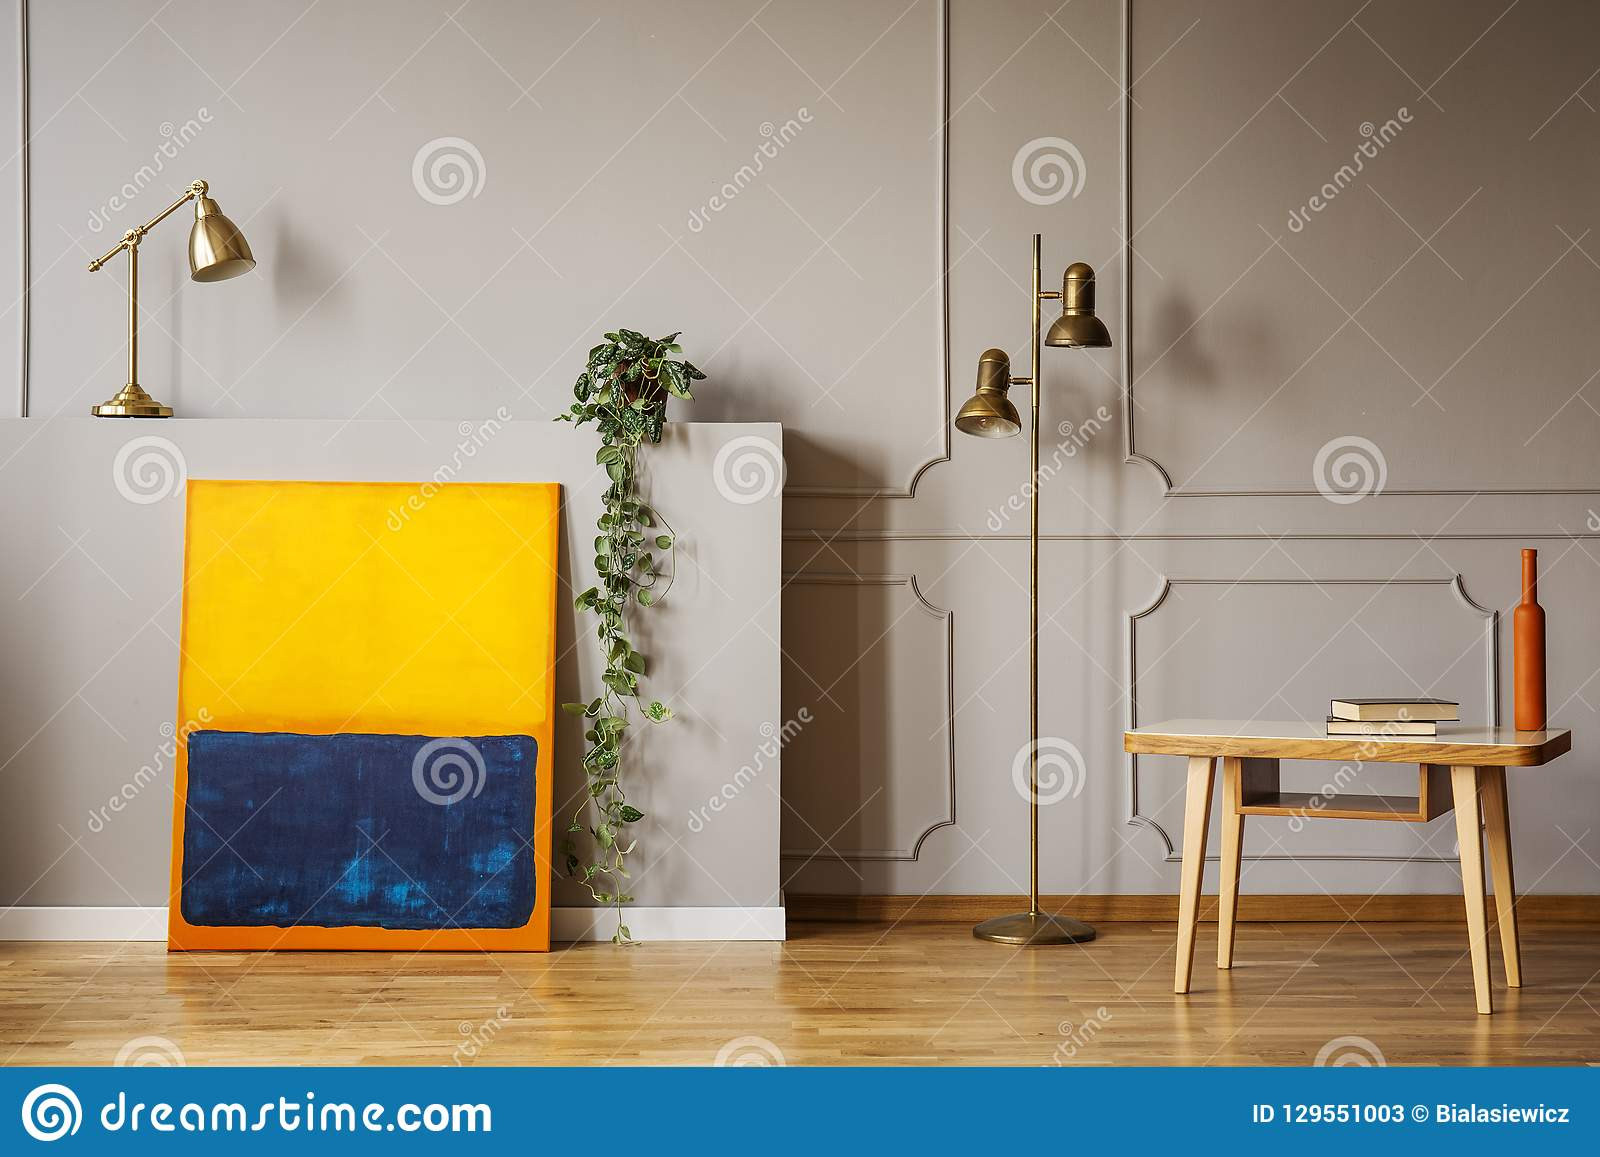 Golden Brass Floor Lamp An Abstract Painting And A Wooden Desk In A Gray Living Room Interior Place For Armchair Real Photo Stock Image Image Of Interior Armchair 129551003